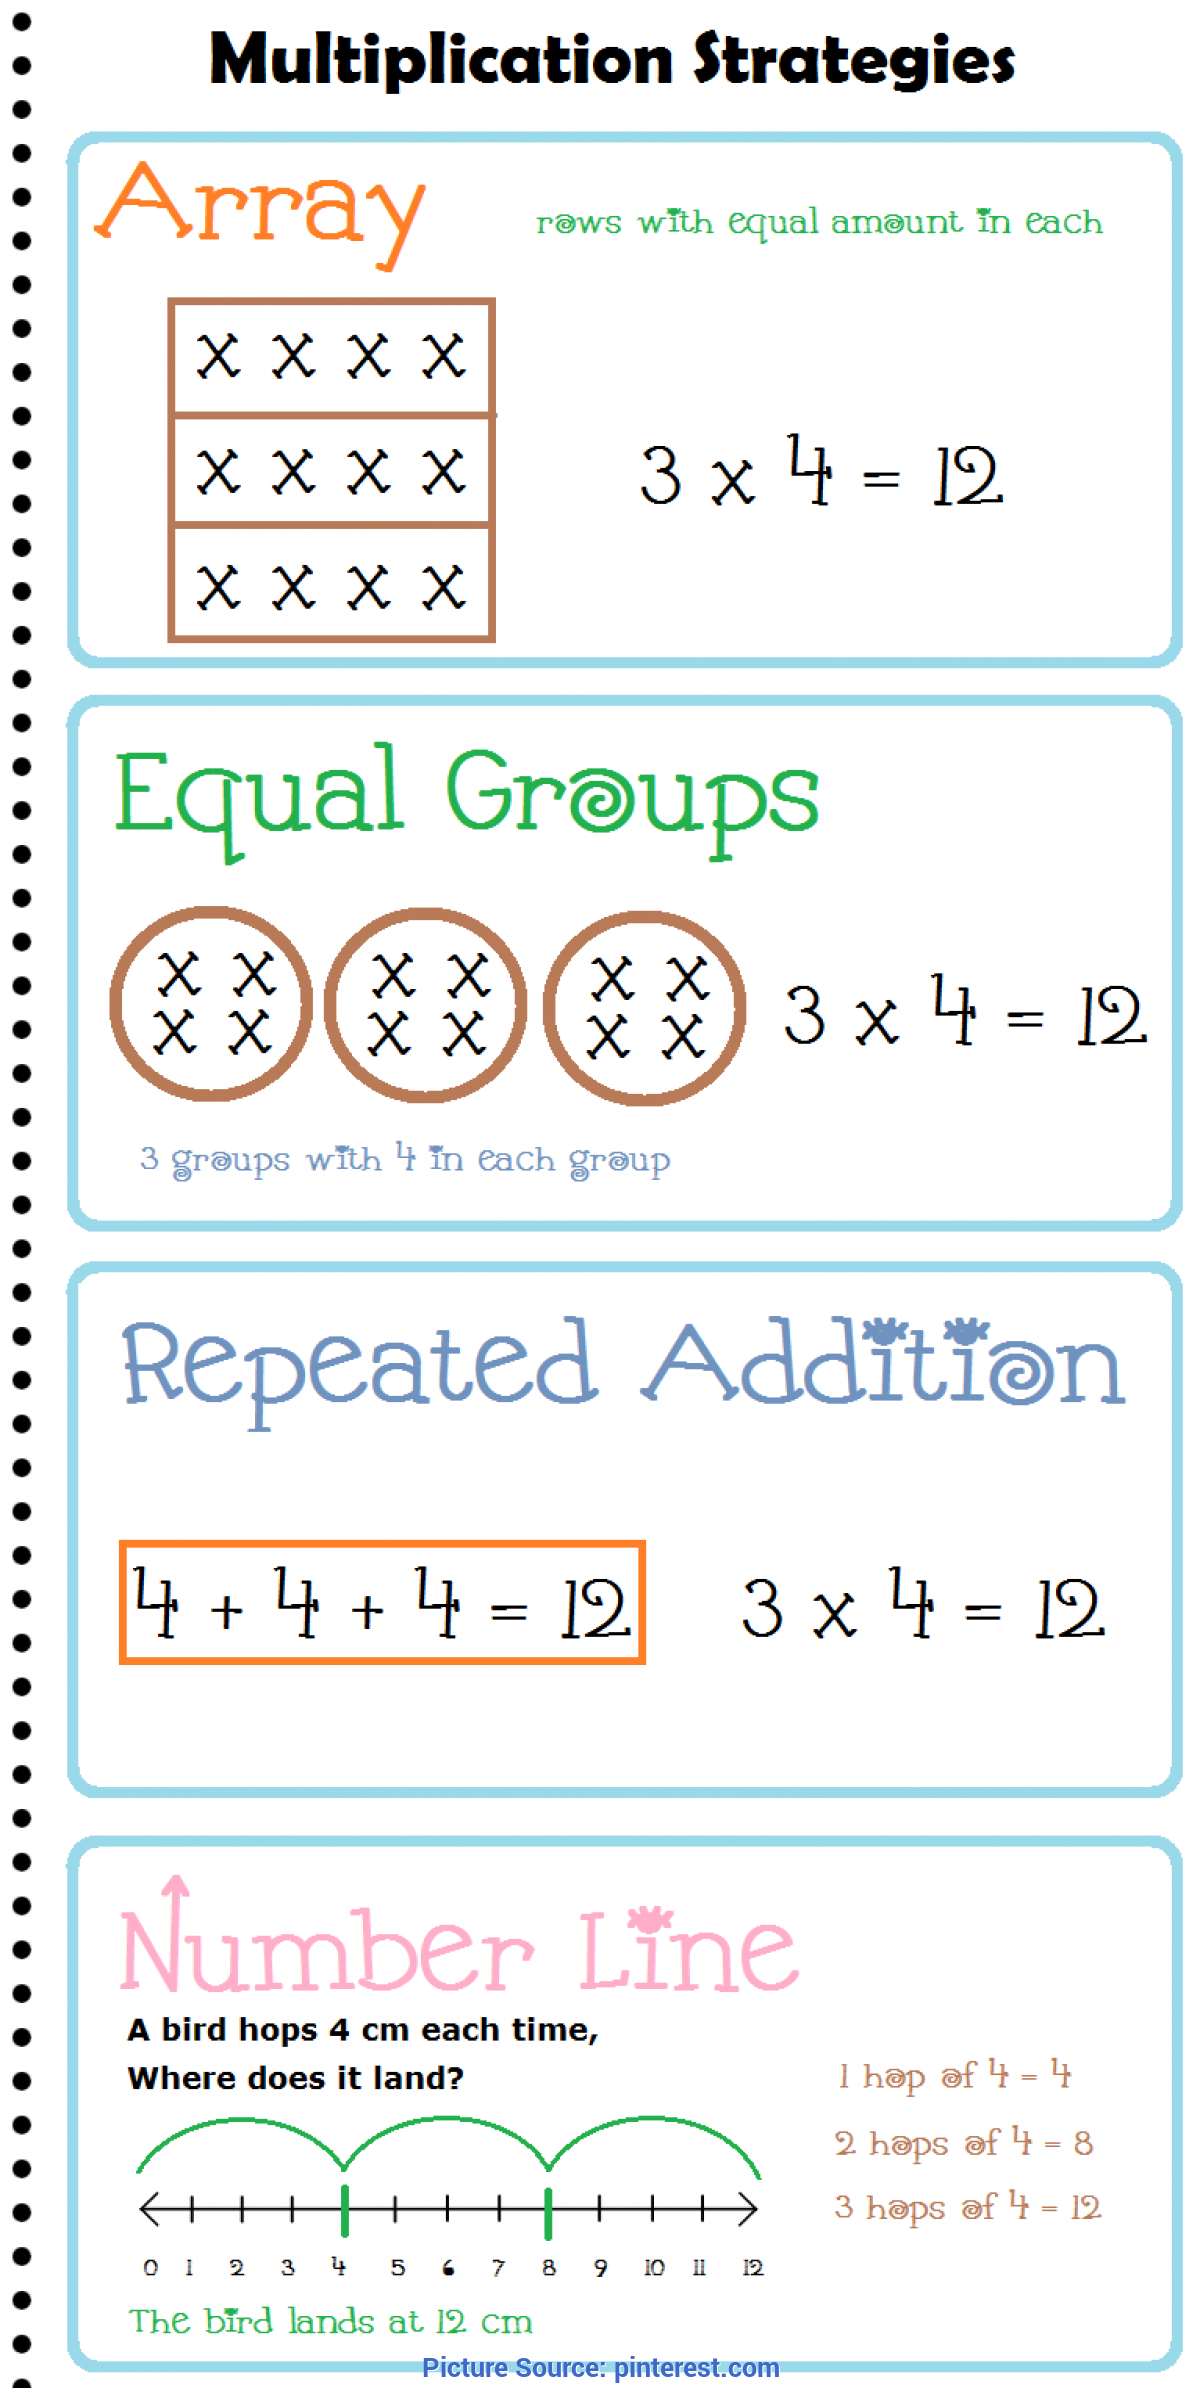 Regular 3Rd Grade Math Strategies Multiplication Strategies Anchor Chart / Posters | Multiplicatio